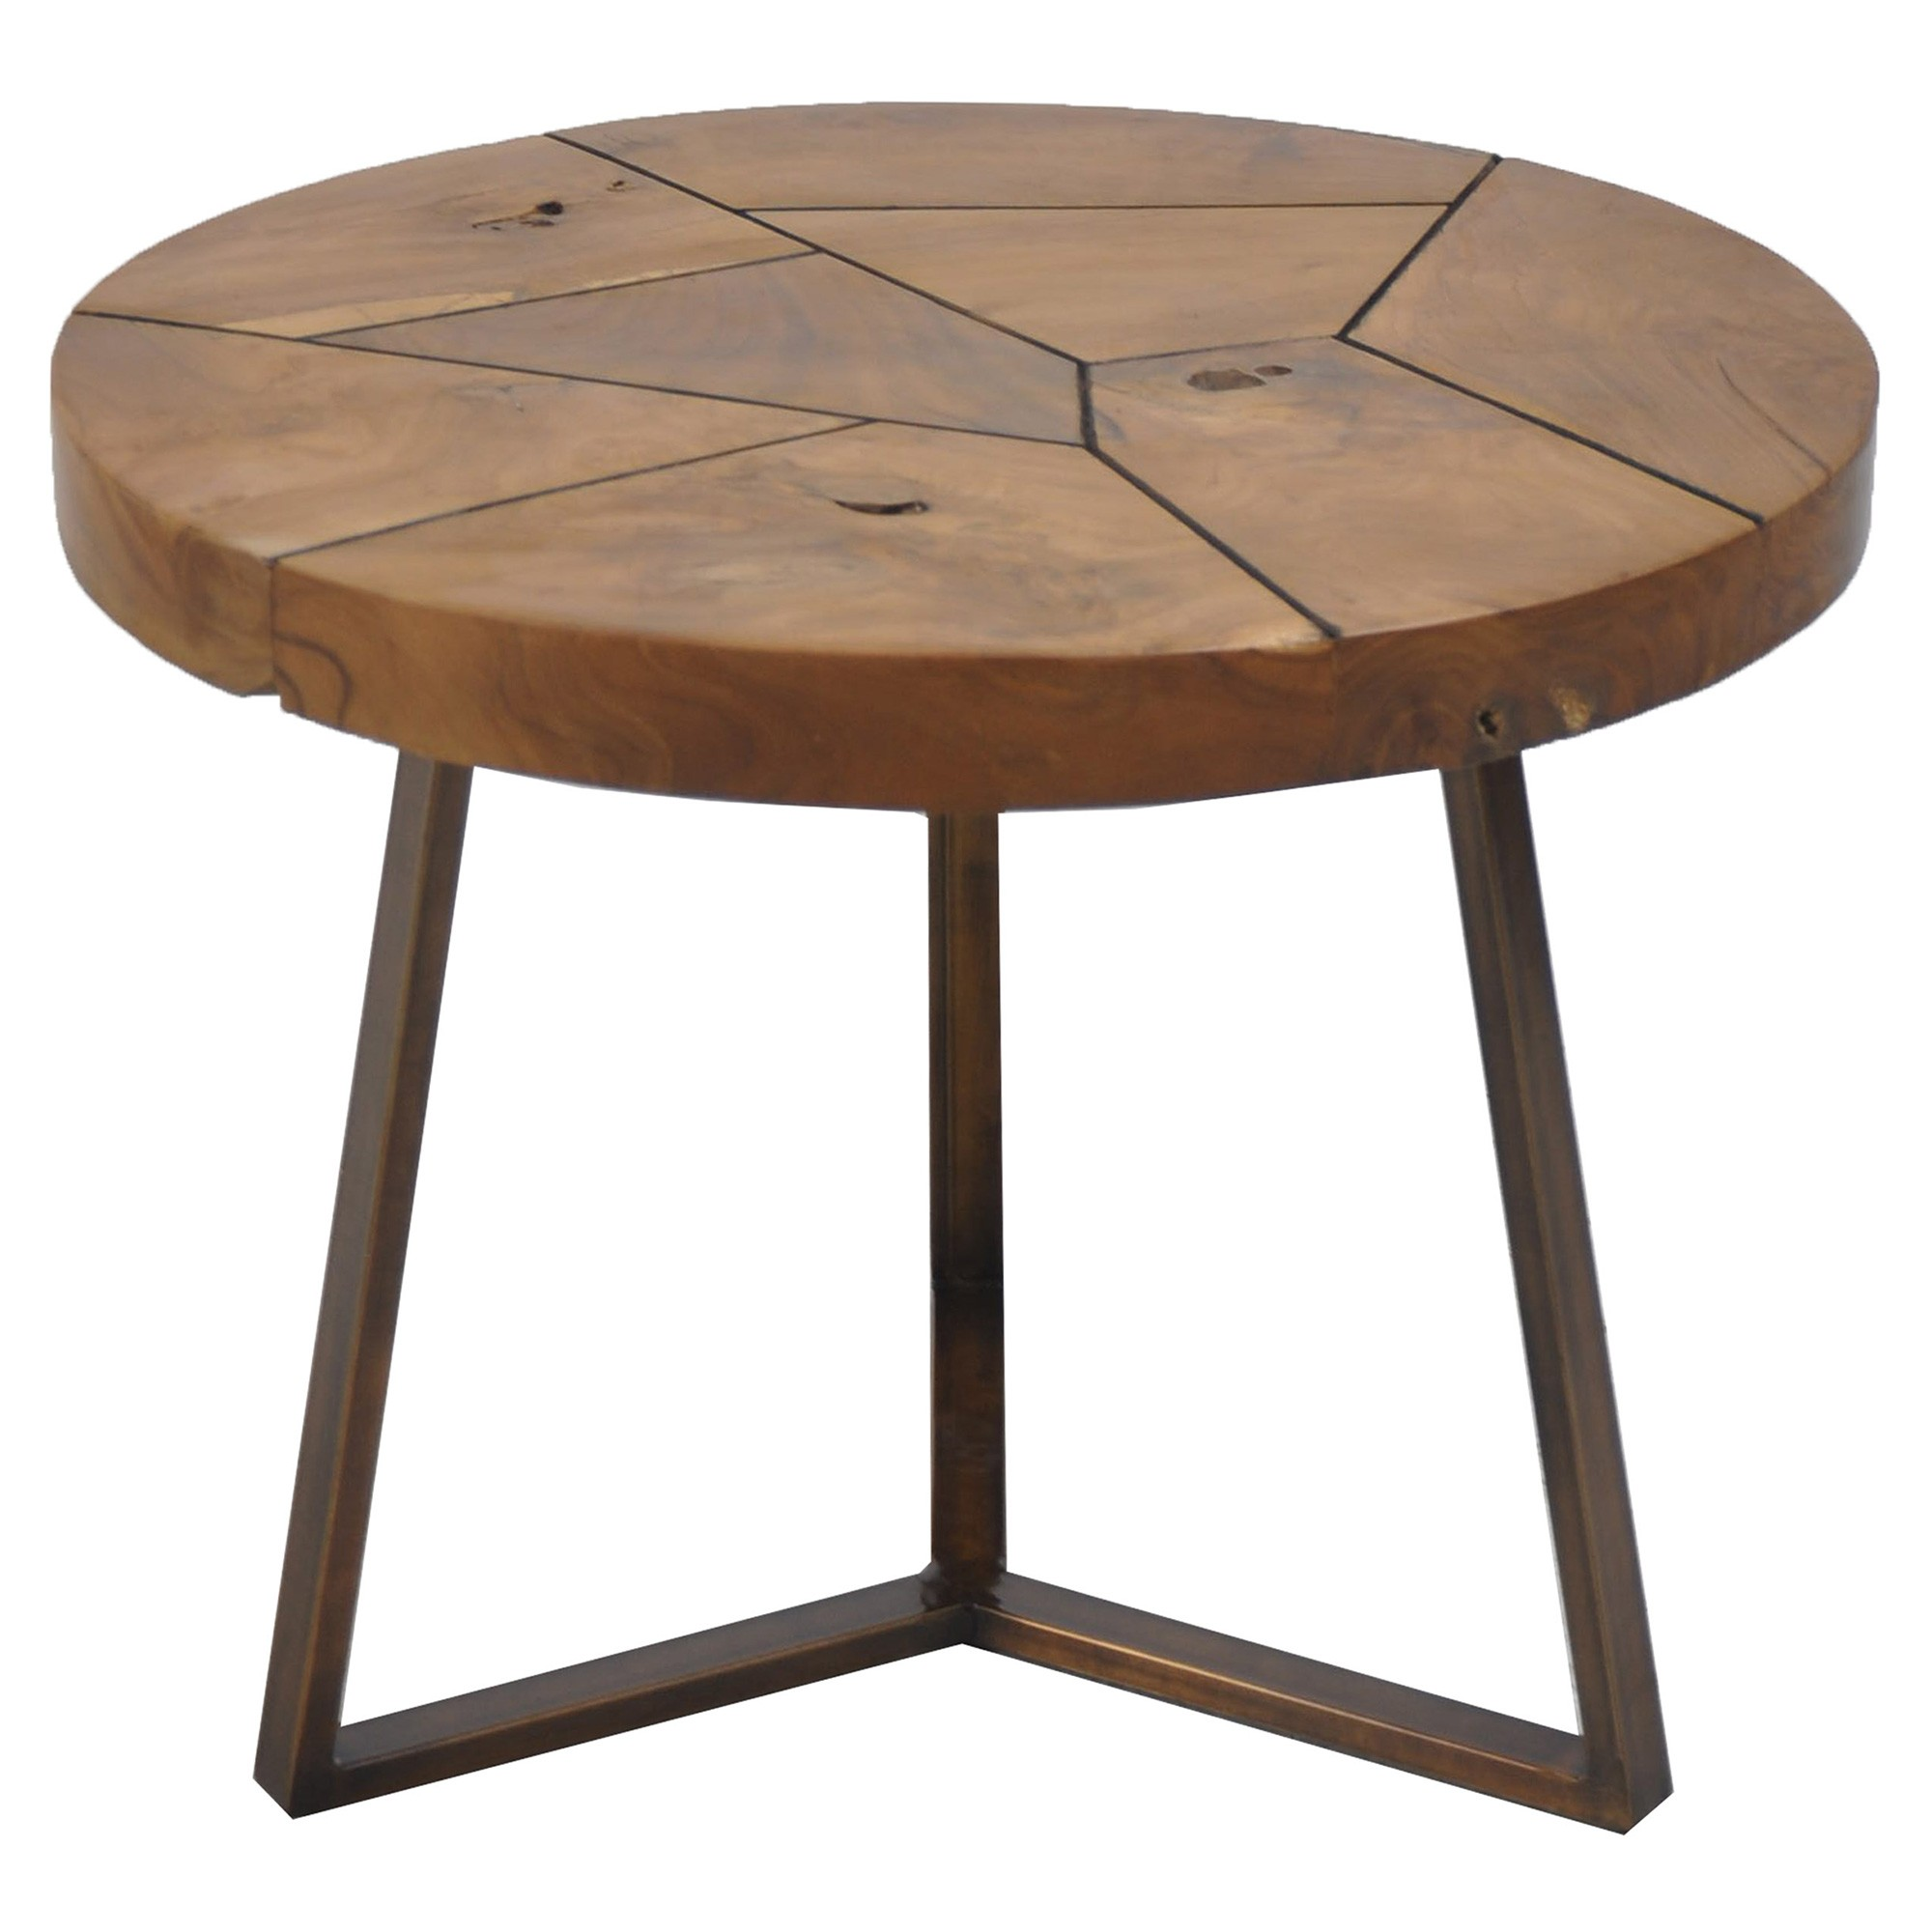 Tropica Commercial Grade Reclaimed Teak Timber & Metal Flutted Round Coffee Table, 60cm